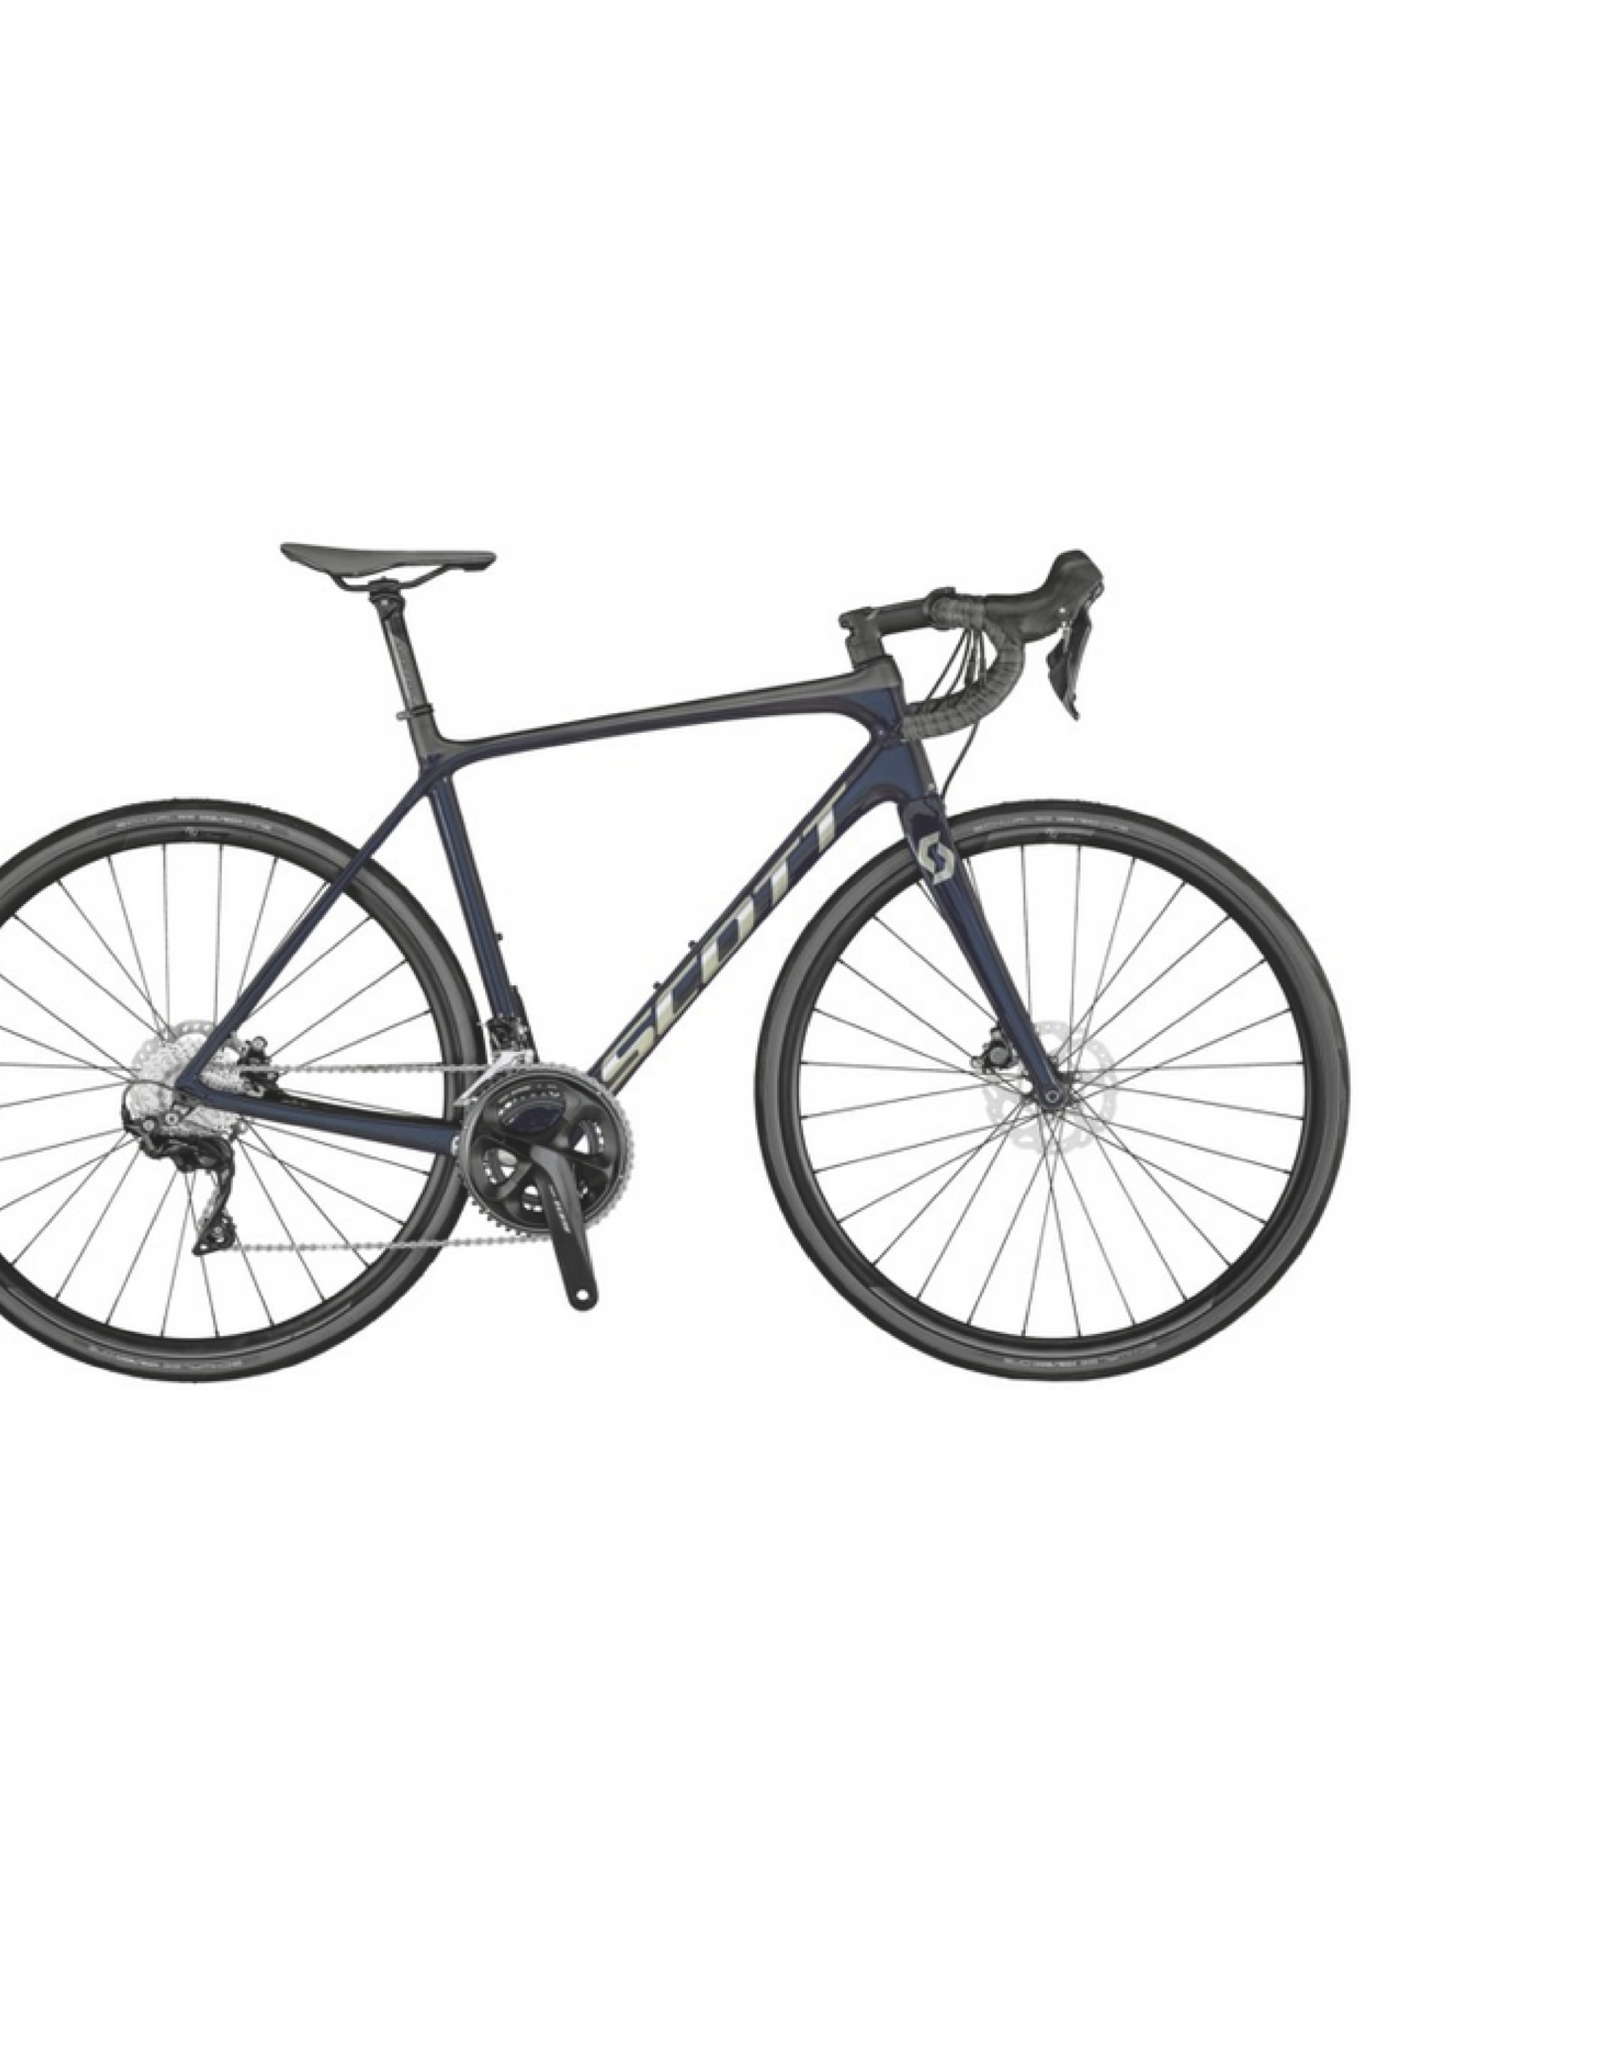 SCOTT BICYCLES Addict 20 Disc 2021 Bicycle